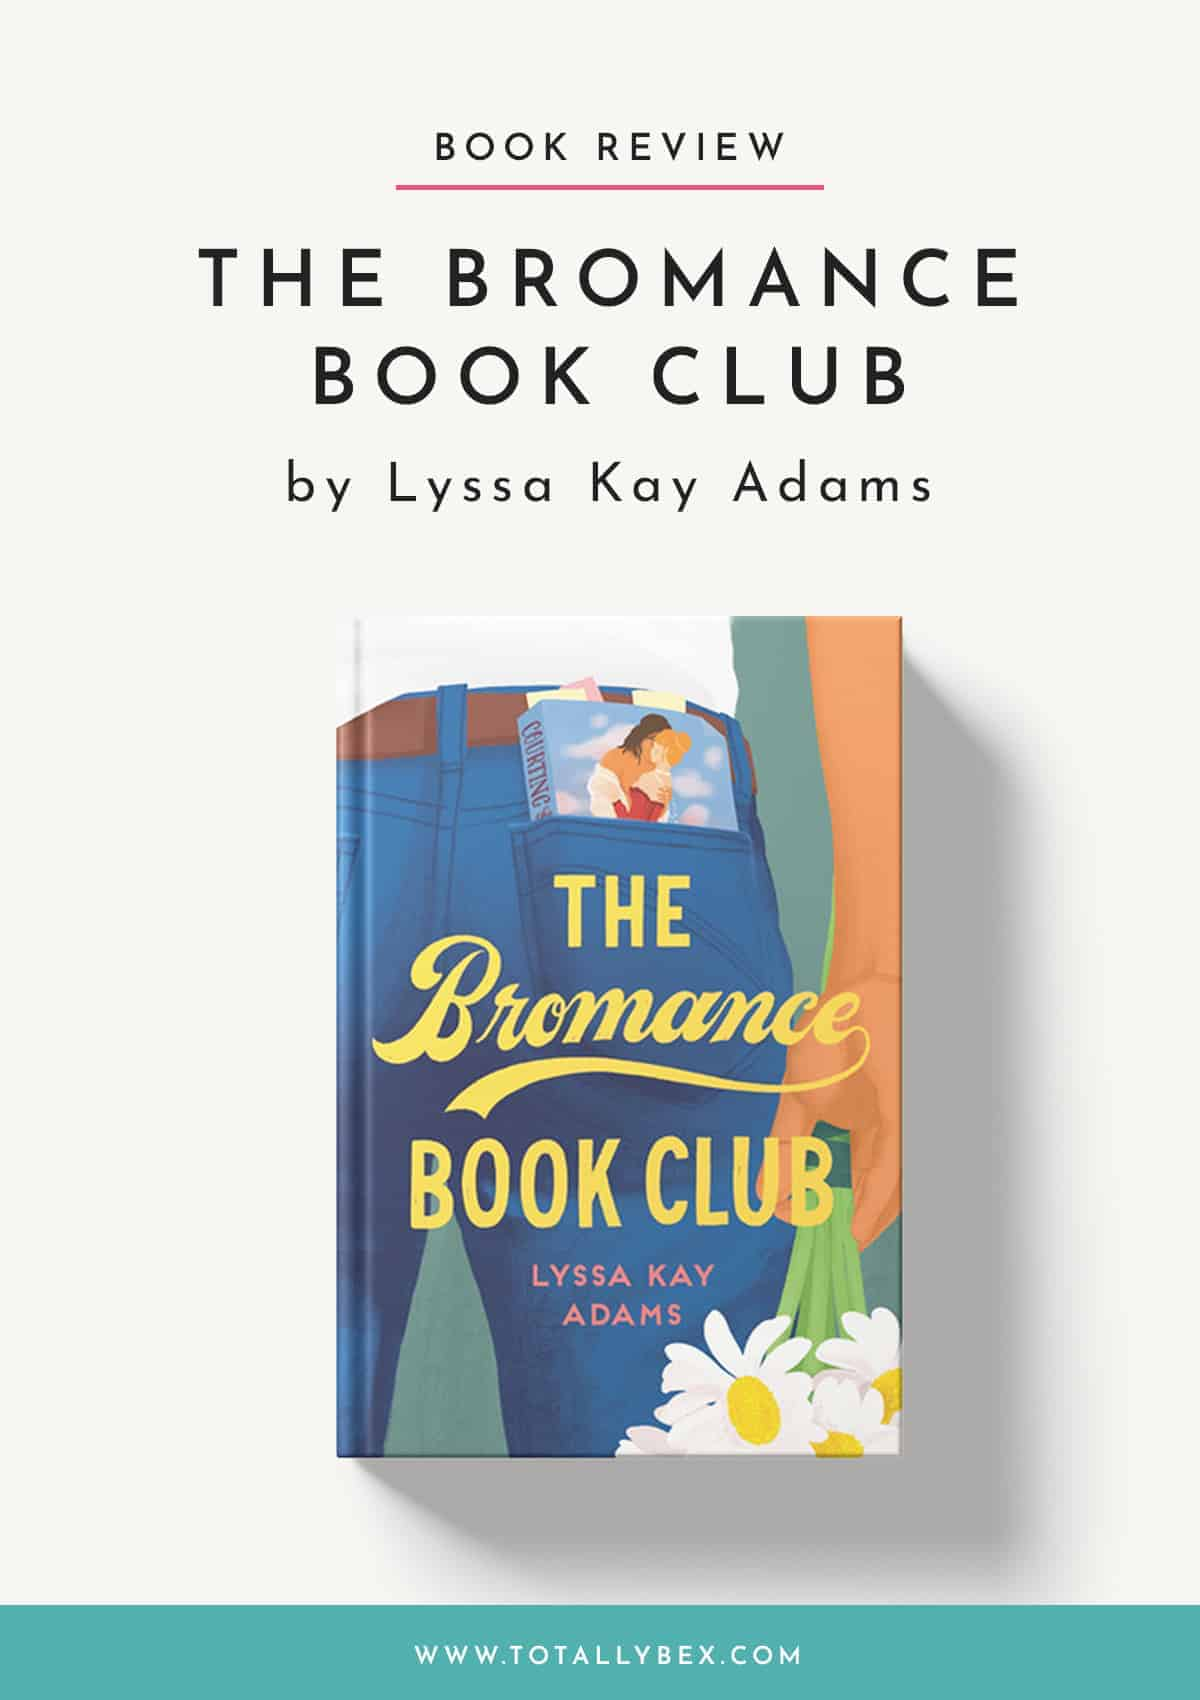 The Bromance Book Club by Lyssa Kay Adams-Book Review